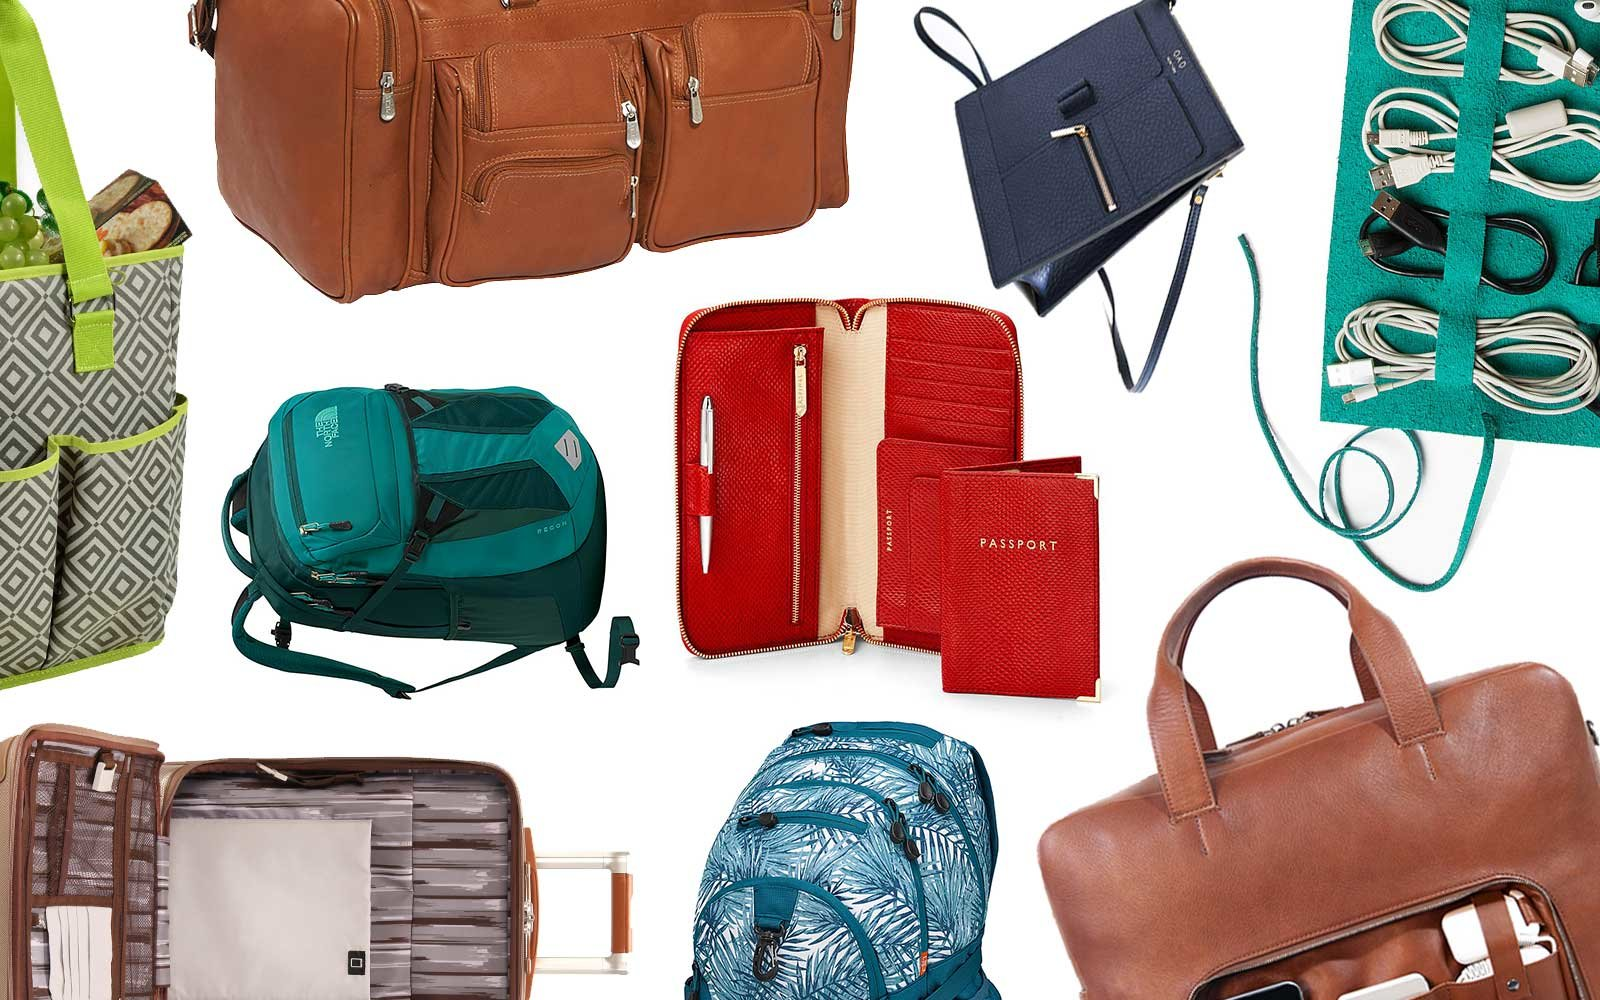 The Best Travel Bags for Staying Organized